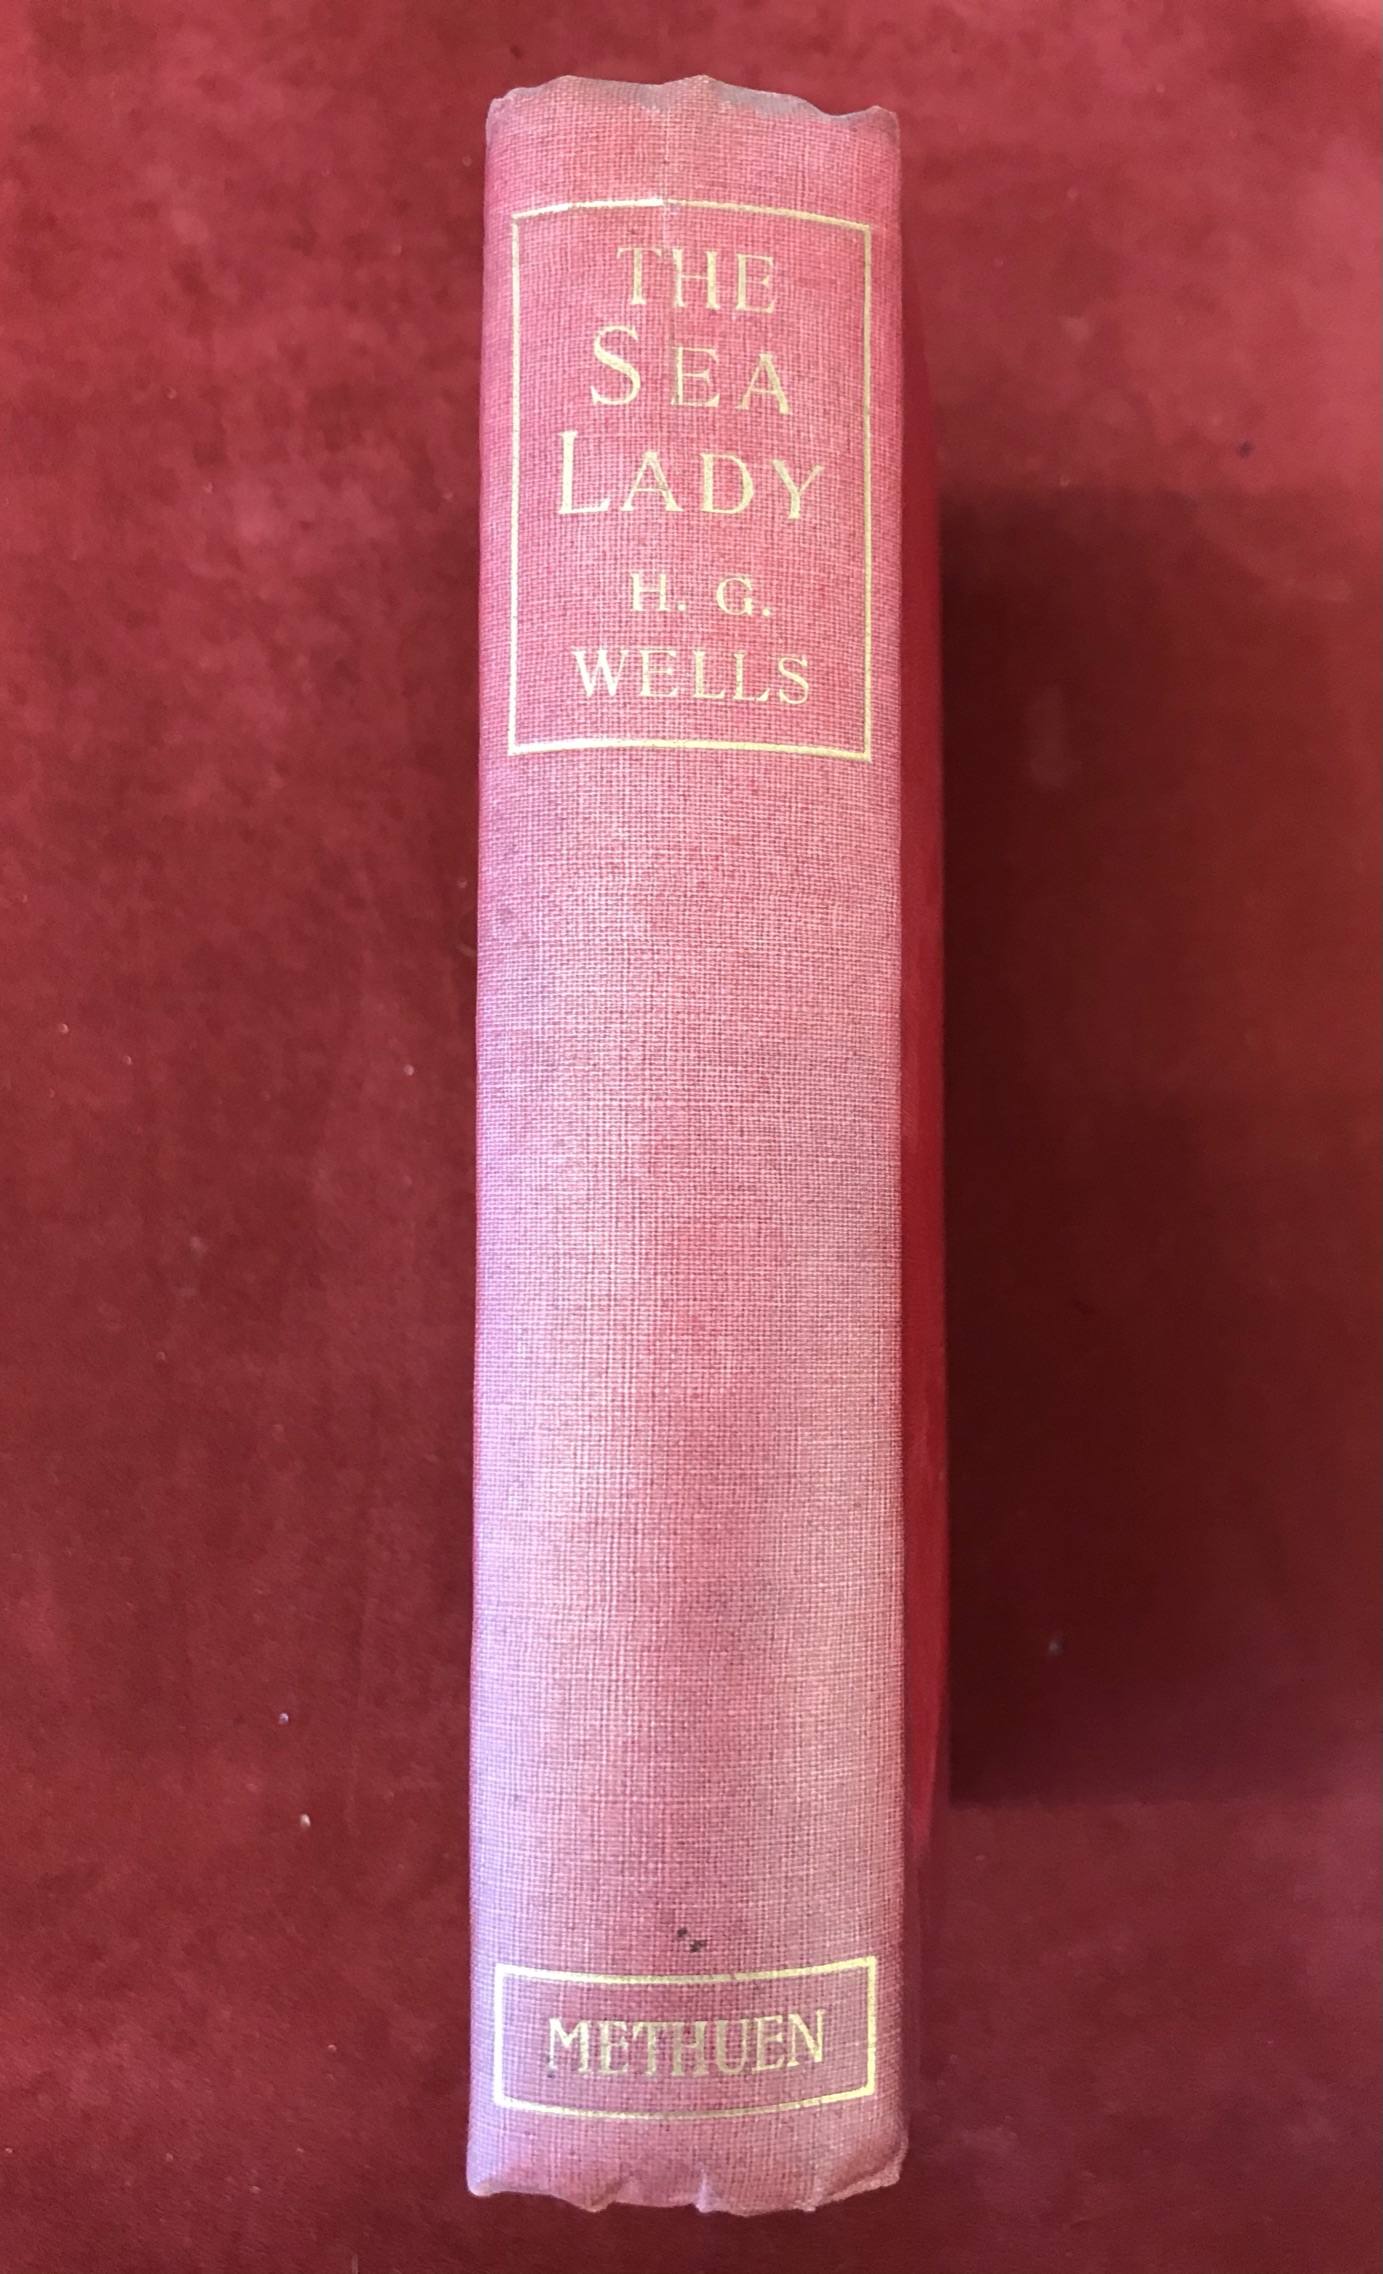 The Sea Ladyby H.G. Wells, First edition, 'later issue' 1902 - Image 2 of 3